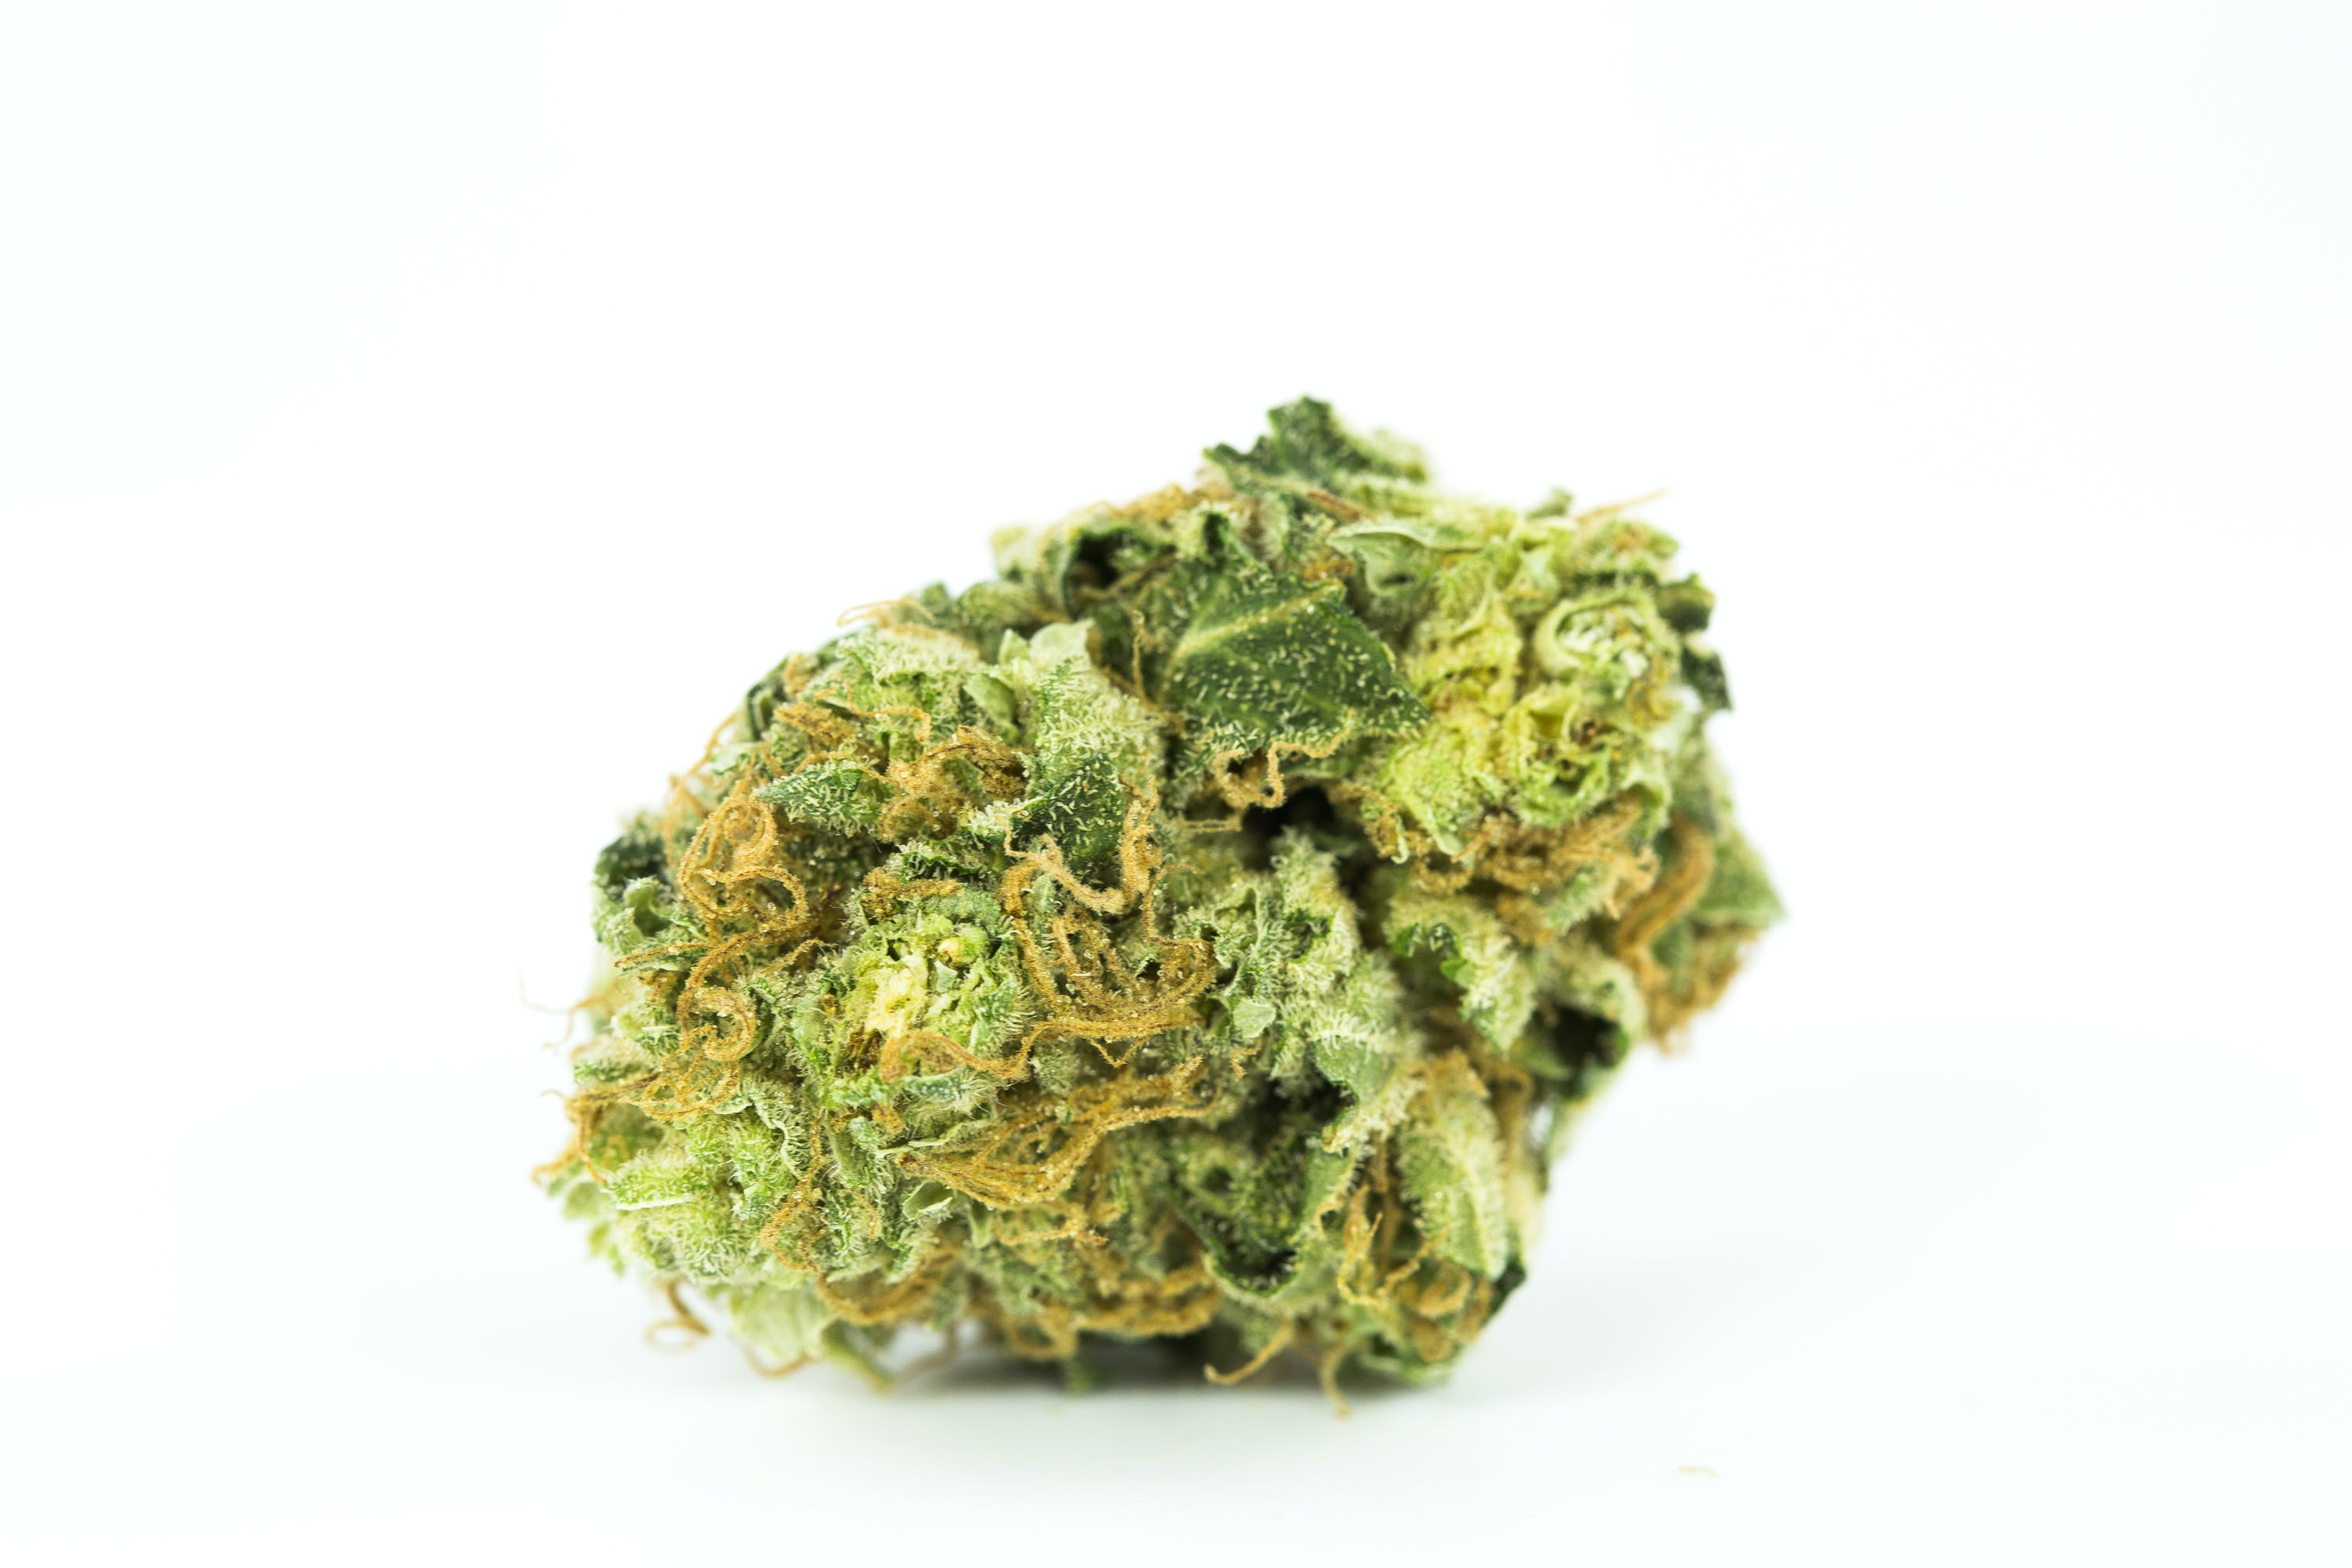 Strawberry Cough 11 The 5 best products for outdoor smoking sessions